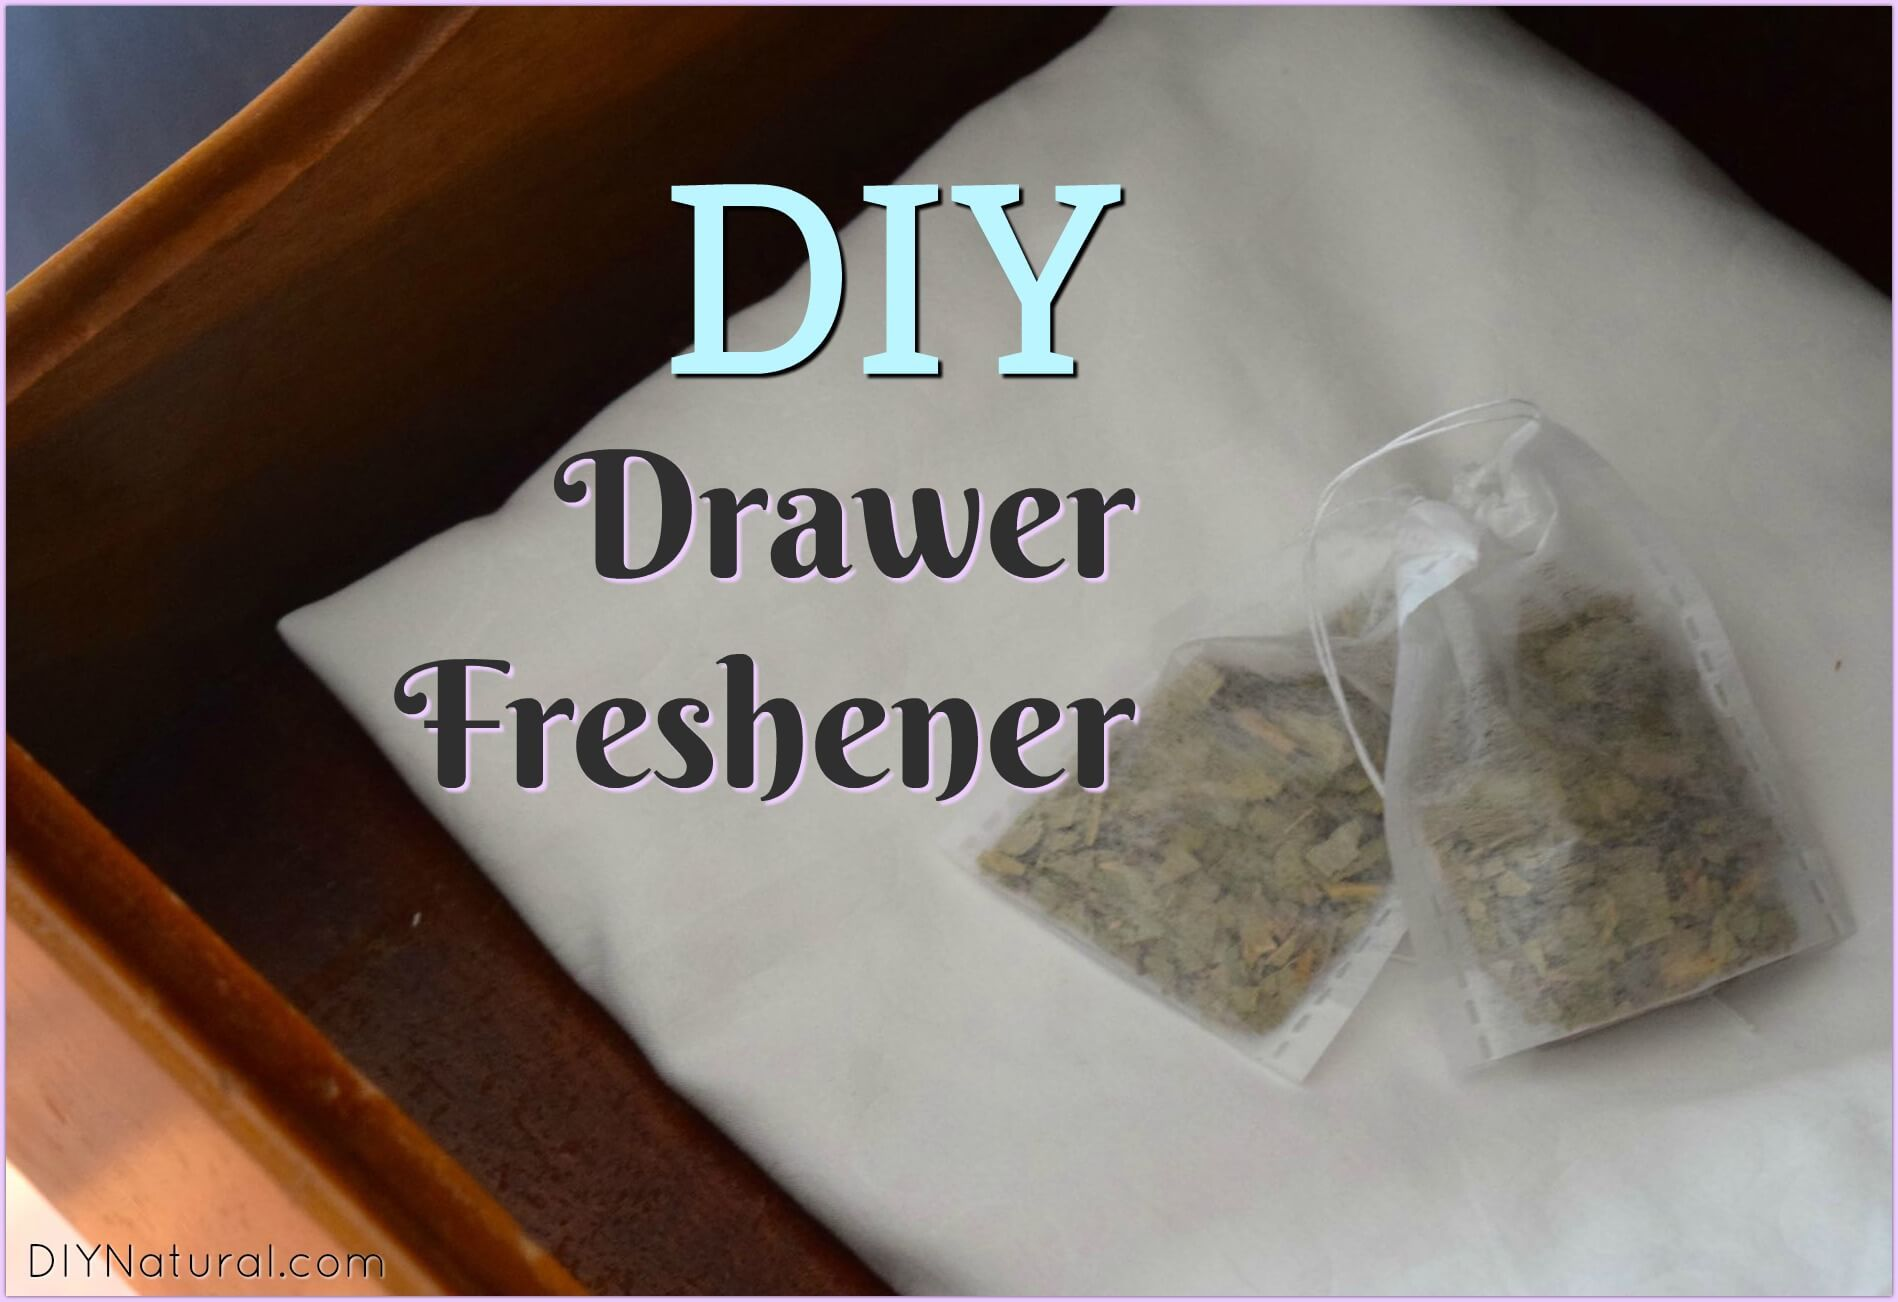 Drawer Freshener Natural Diy Eucalyptus Drawer Fresheners Diy Cleaning Products Freshener Diy Natural Cleaners Diy